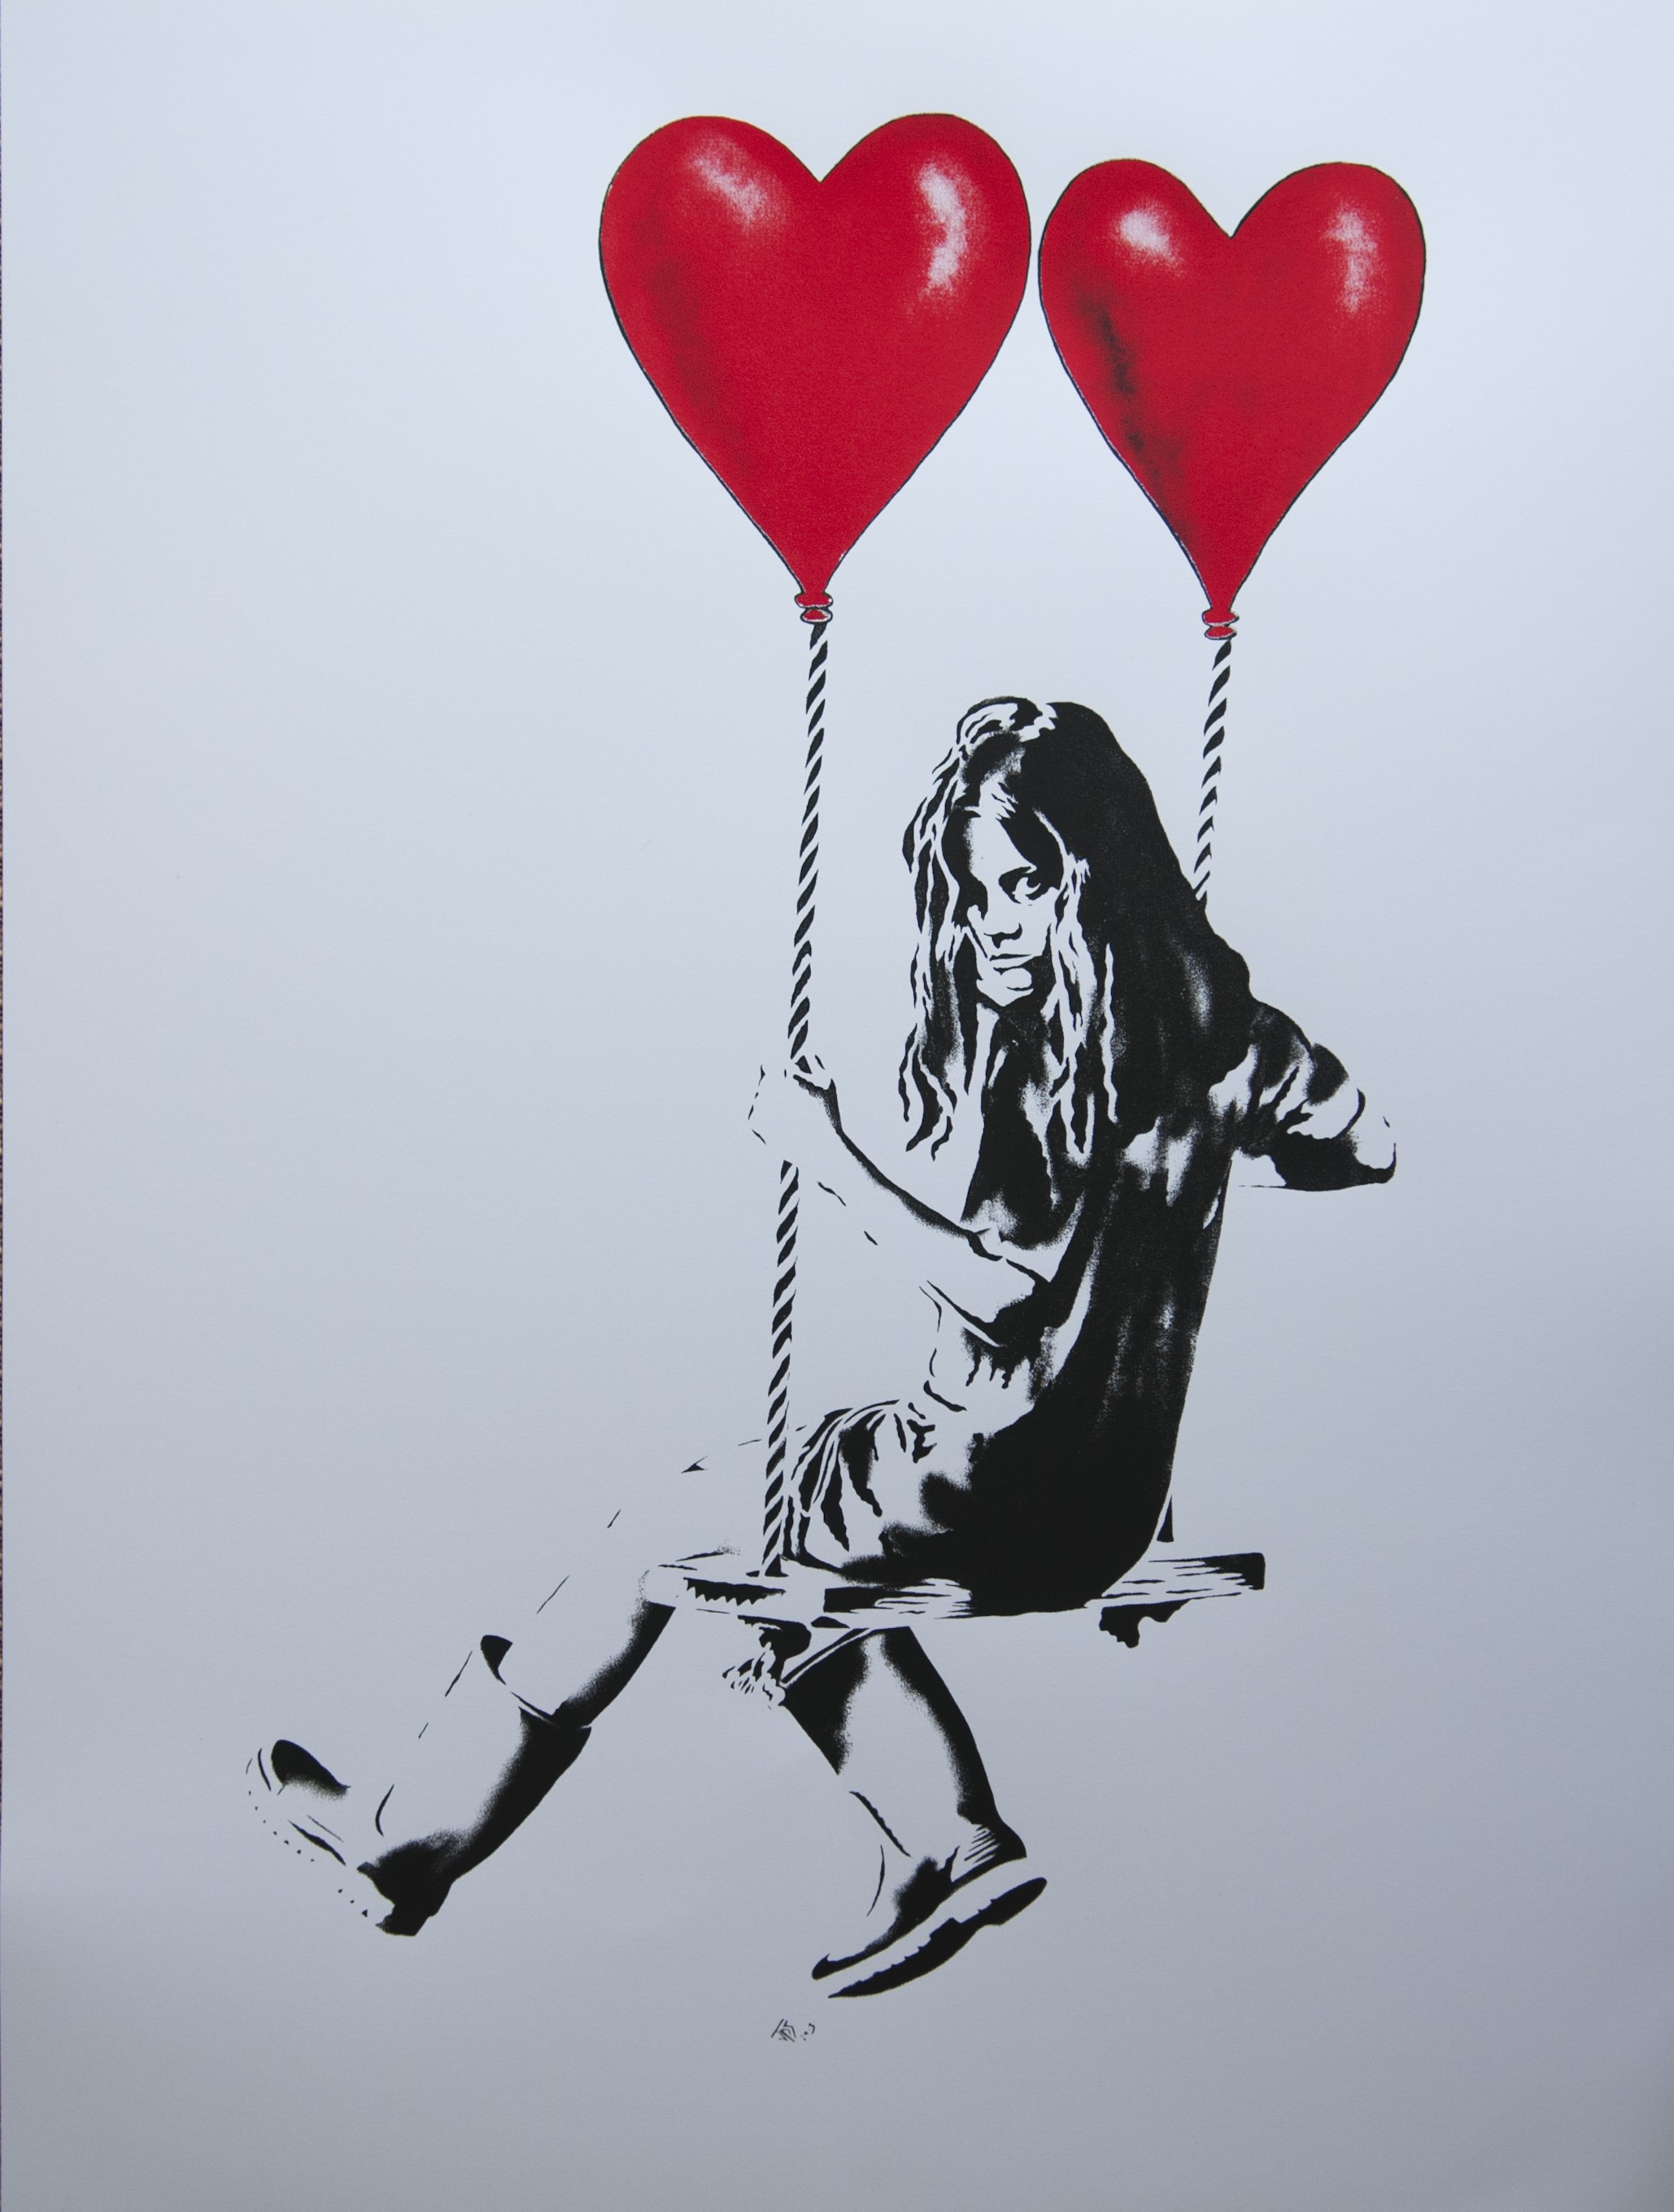 jps Girl On A Swing With Balloons